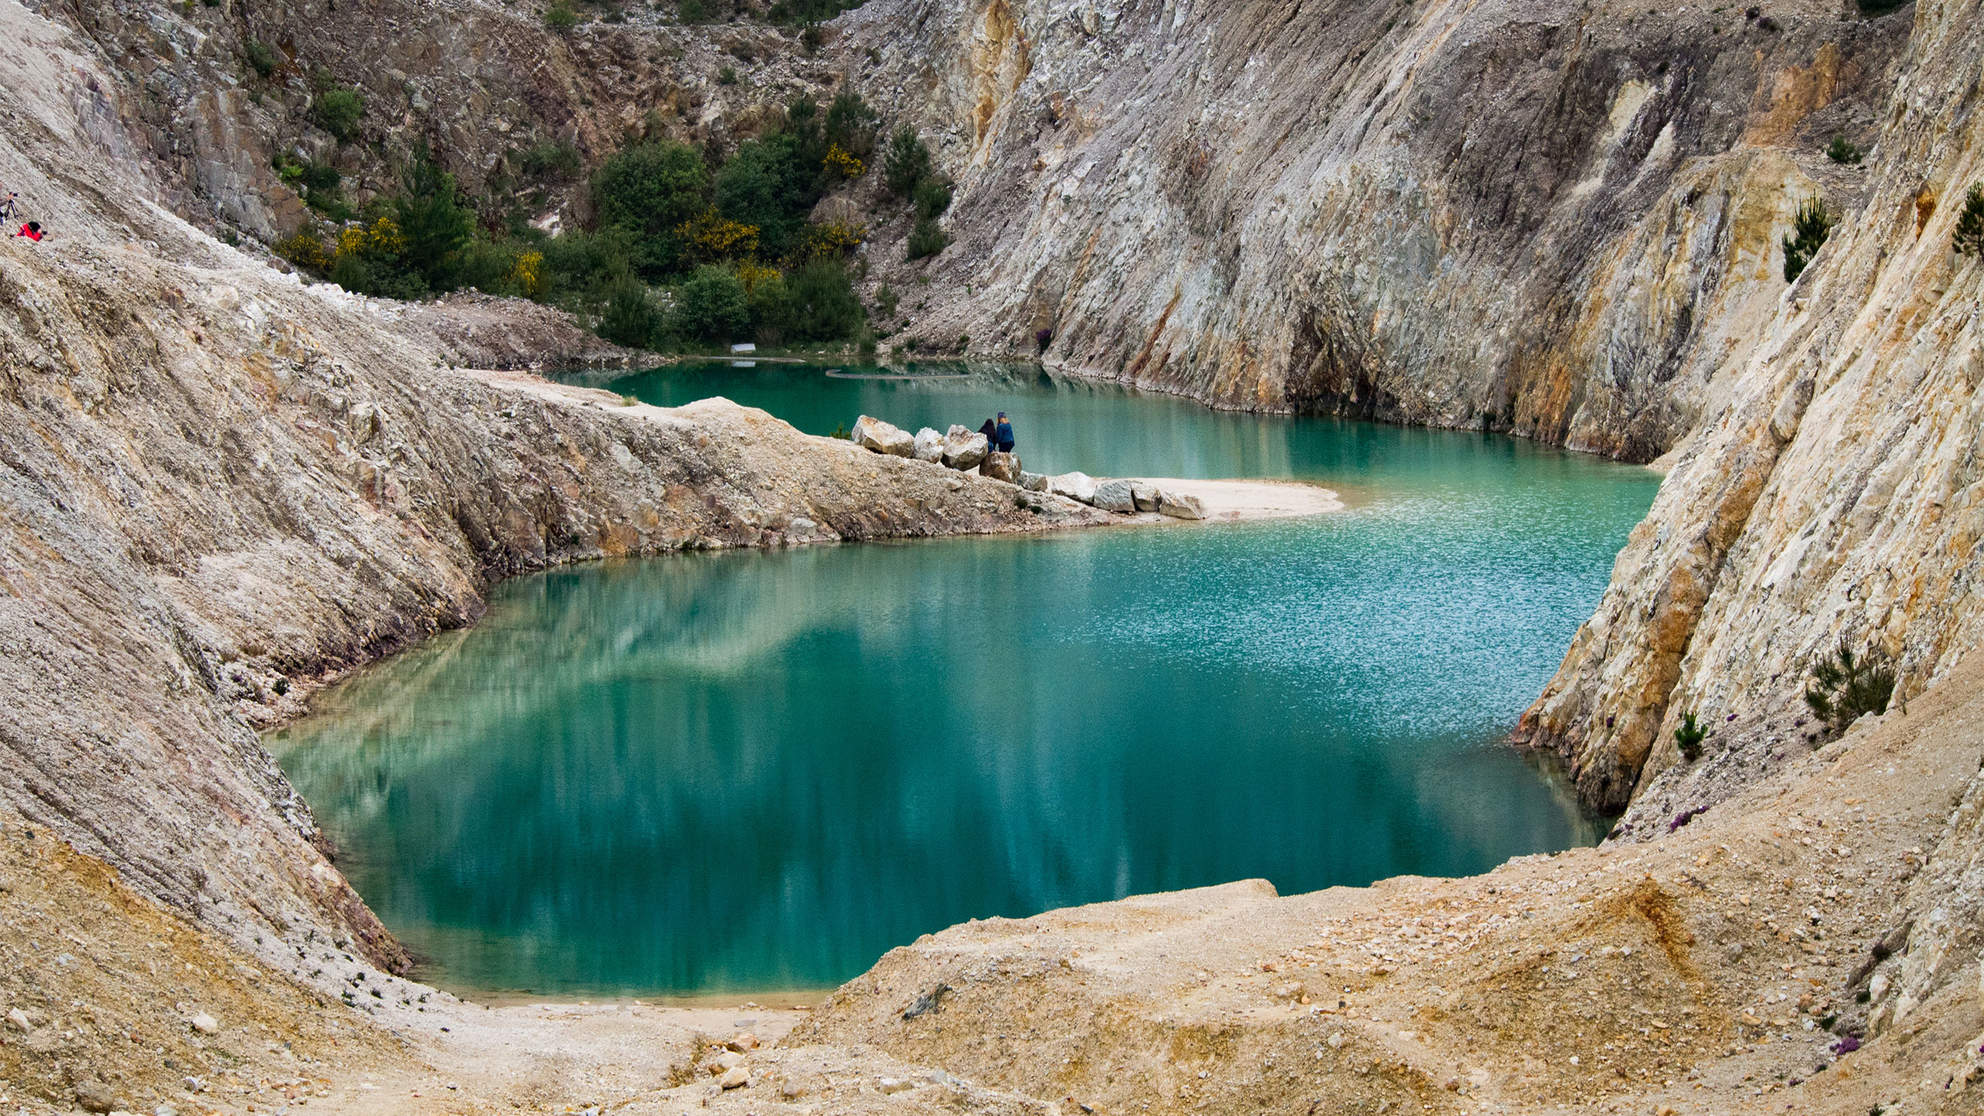 Instagram Influencers Sick After Swimming in Turquoise Lake That Is Actually a Toxic Dump